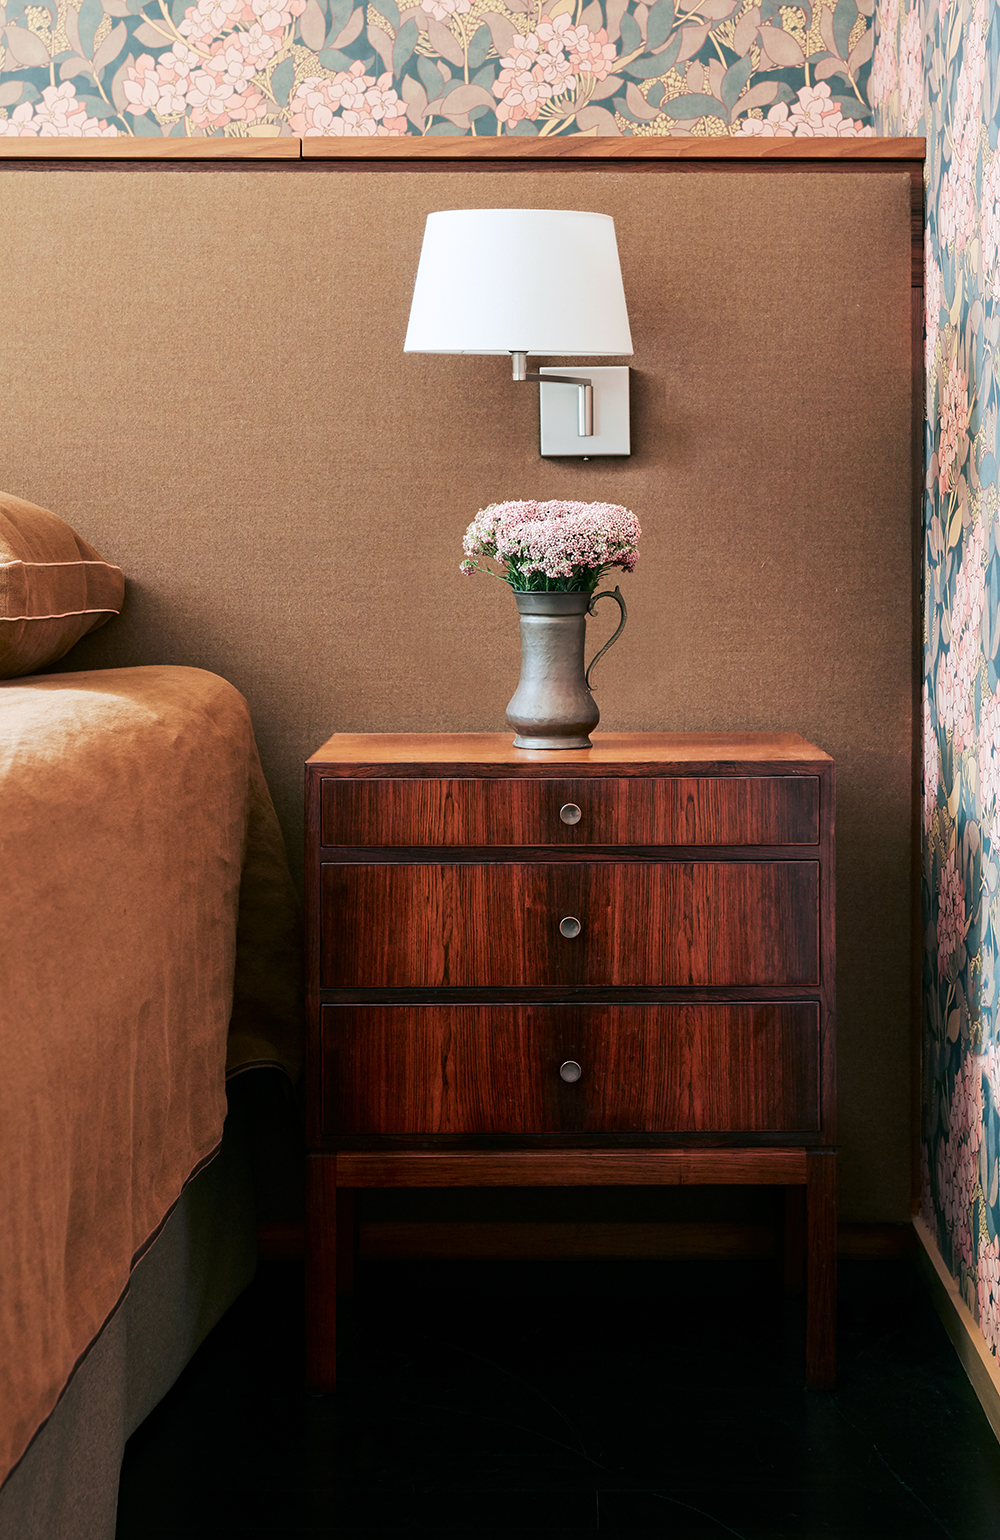 Beside the bed, the nightstands are vintage. The headboard was also custom made by Henry Built and upholstered by Lucarini Custom Upholstery with Fortuny flannel fabric from Sloan Miyasato.